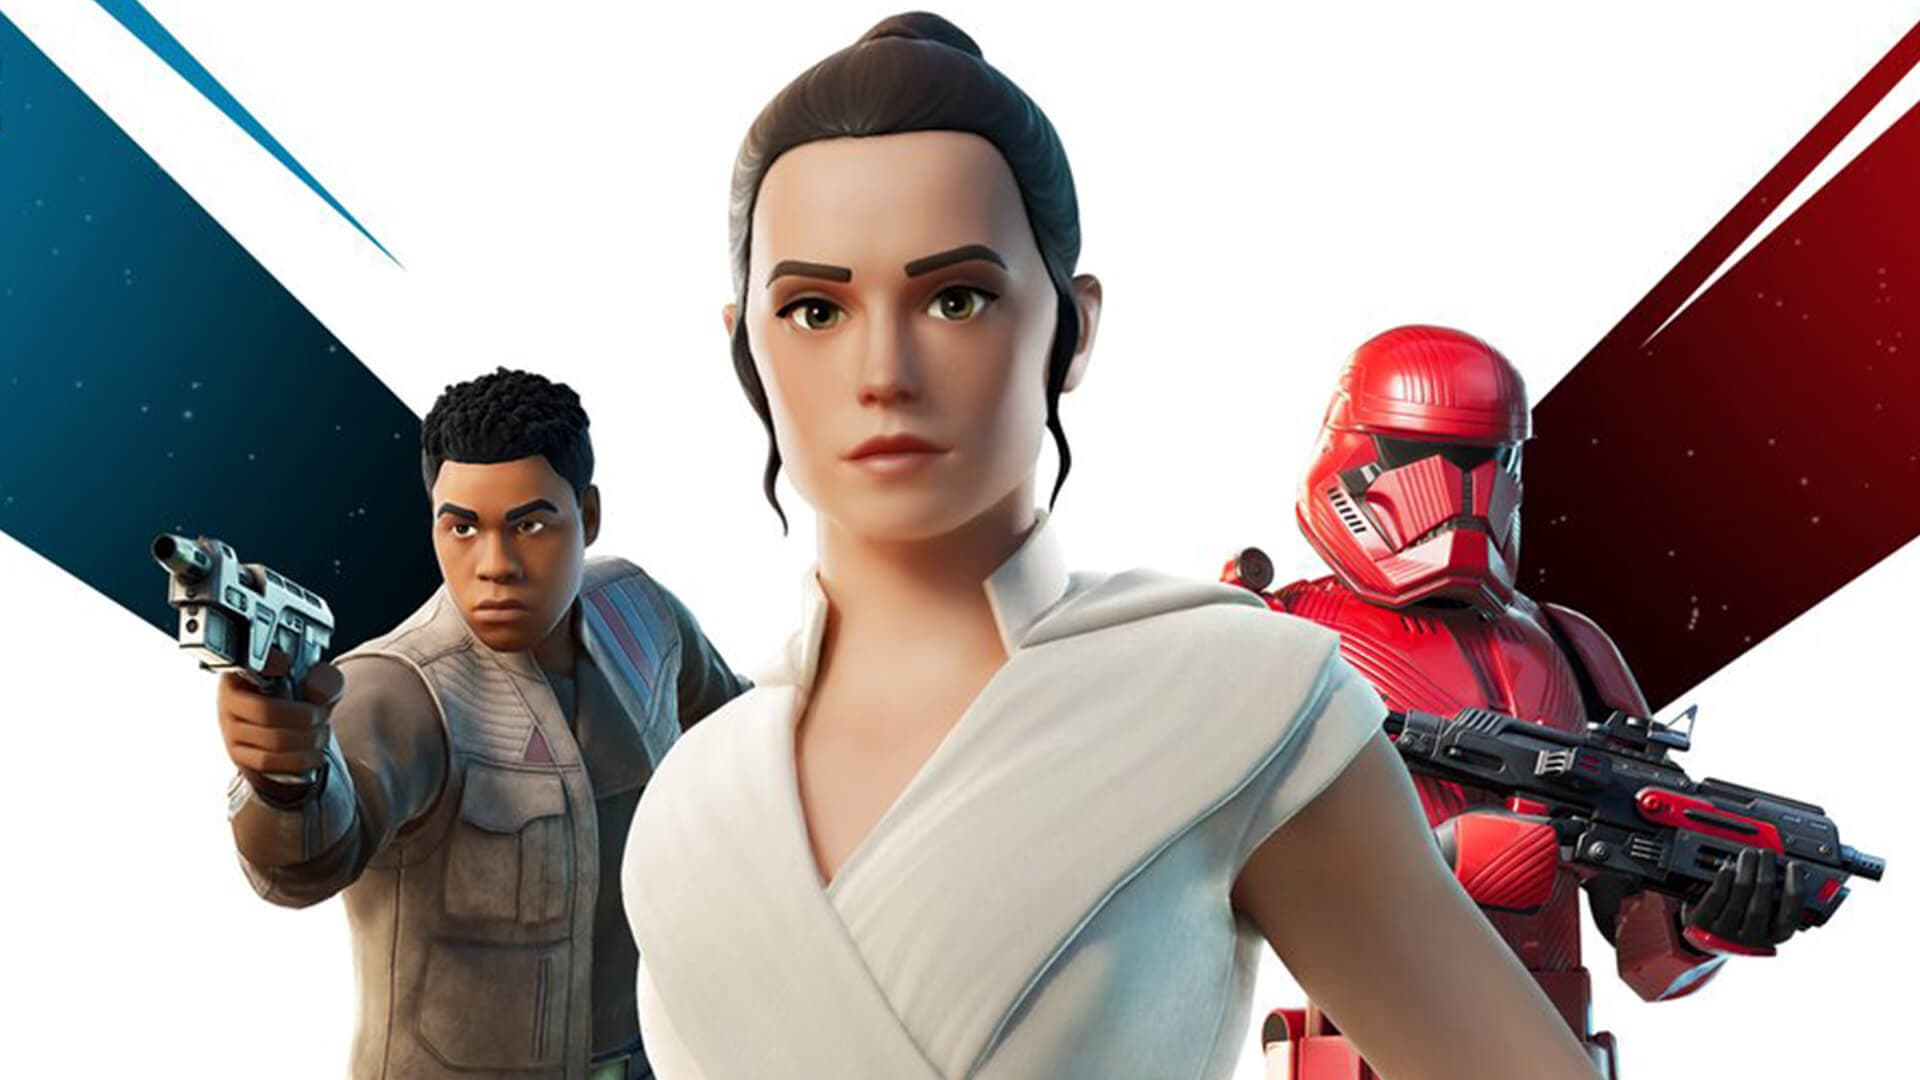 Ya están disponibles los artículos de Star Wars The Rise of Skywalker por tiempo limitado en Fortnite 6